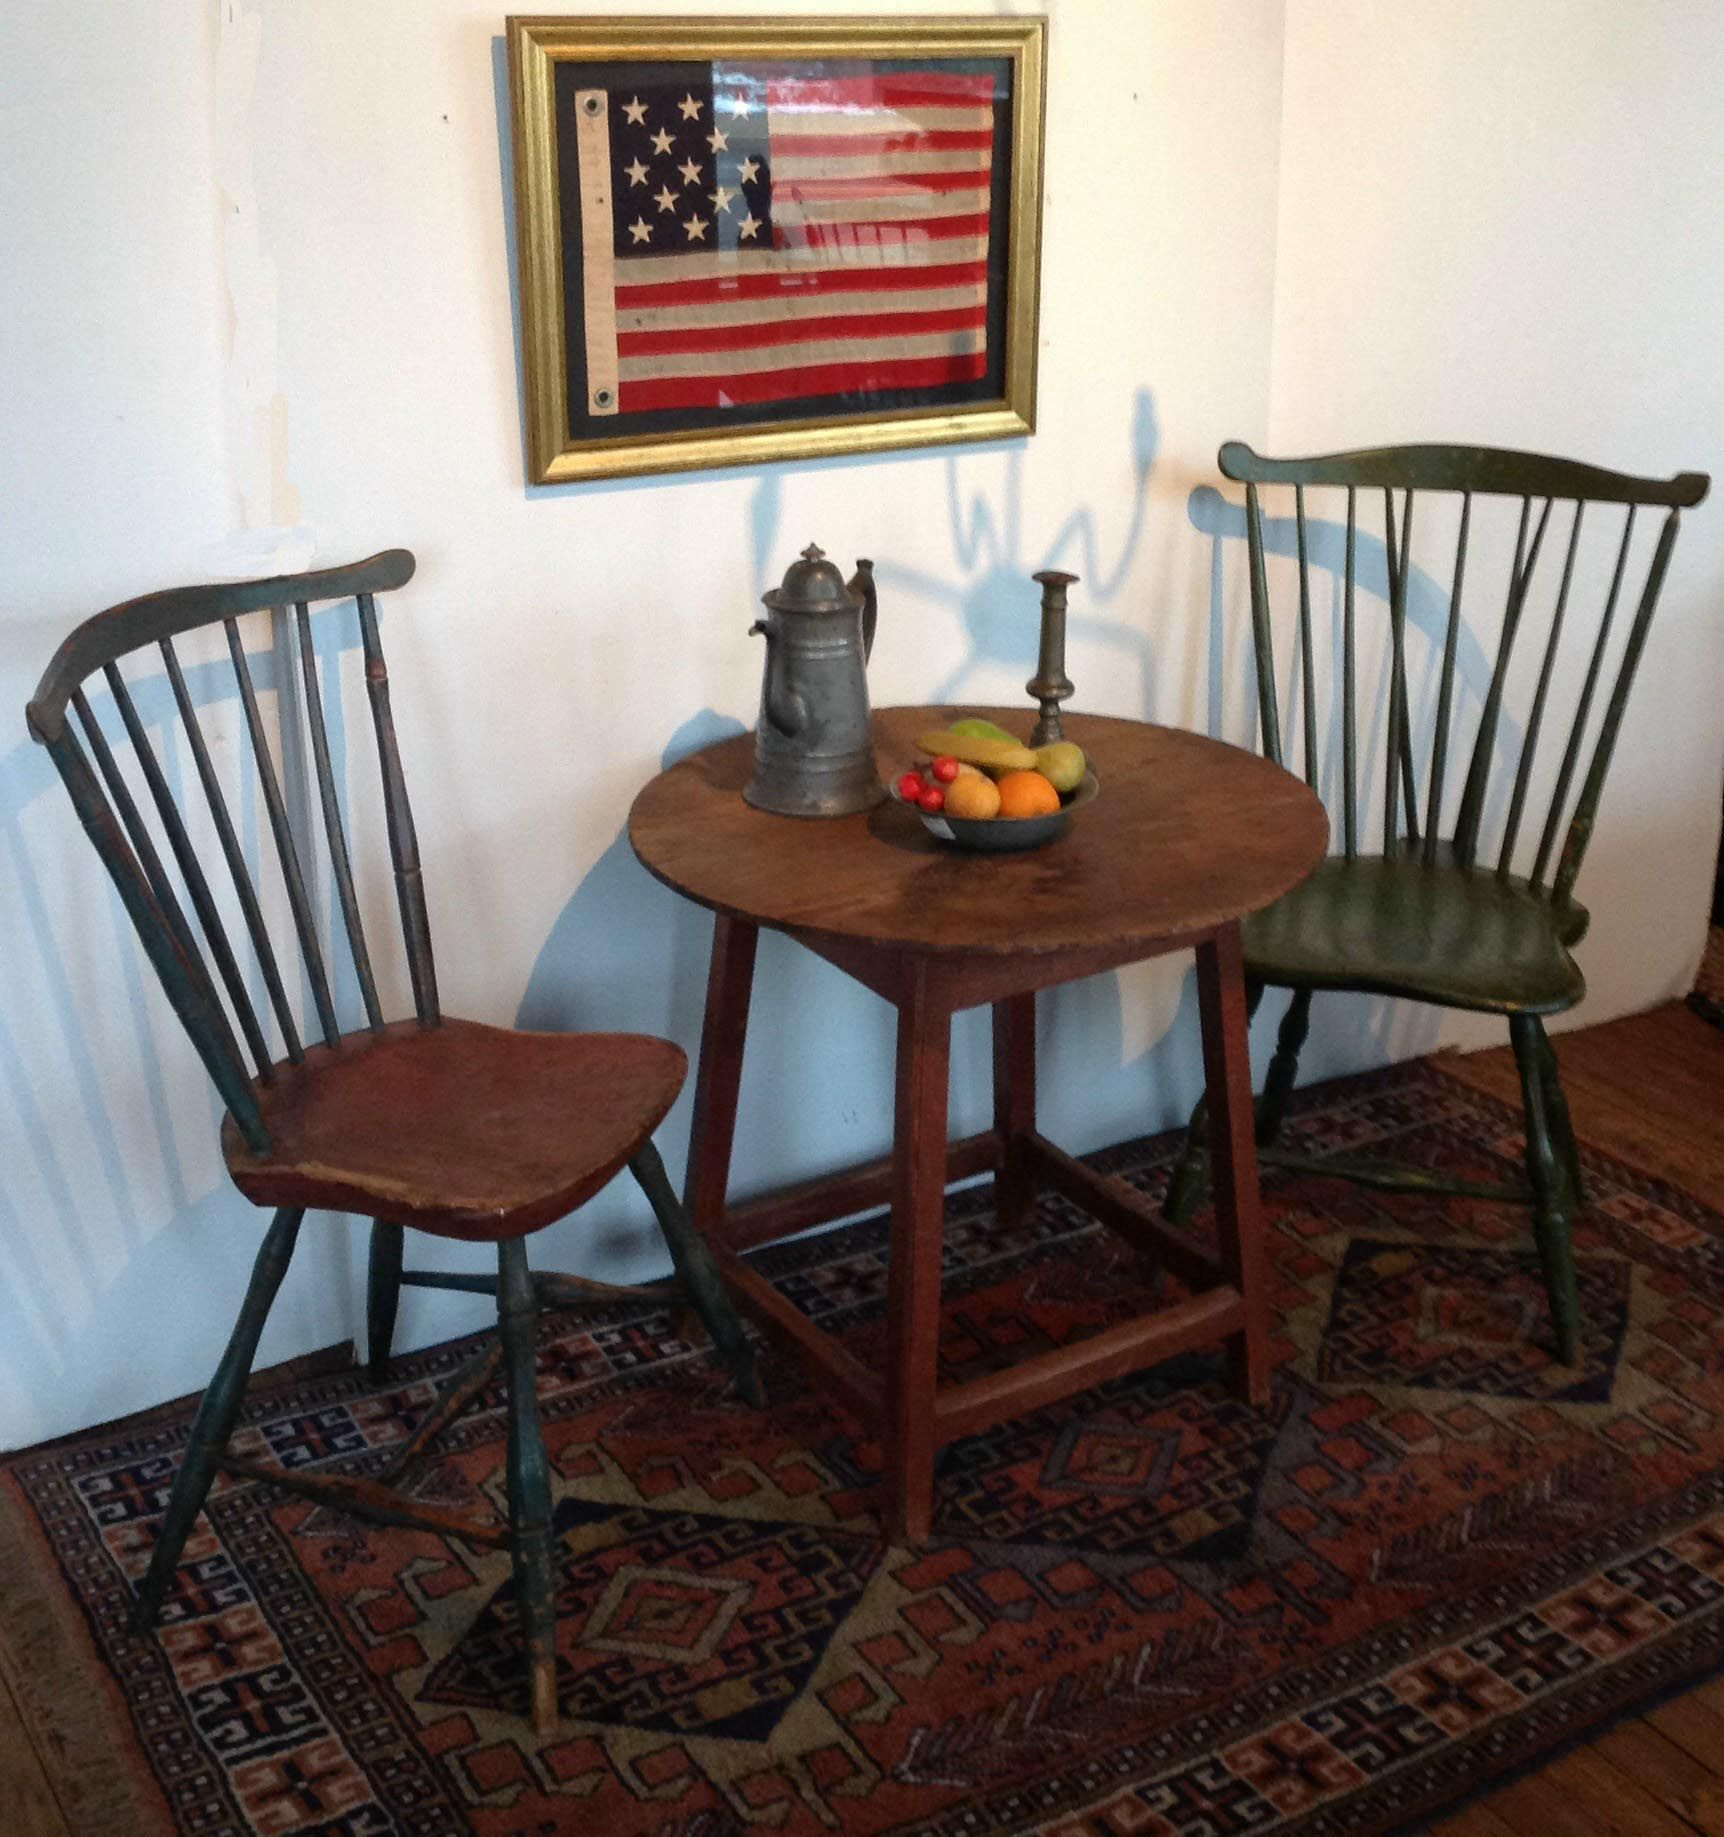 18th Century Tavern Table With Two Windsor Chairs And 13 Star Flag